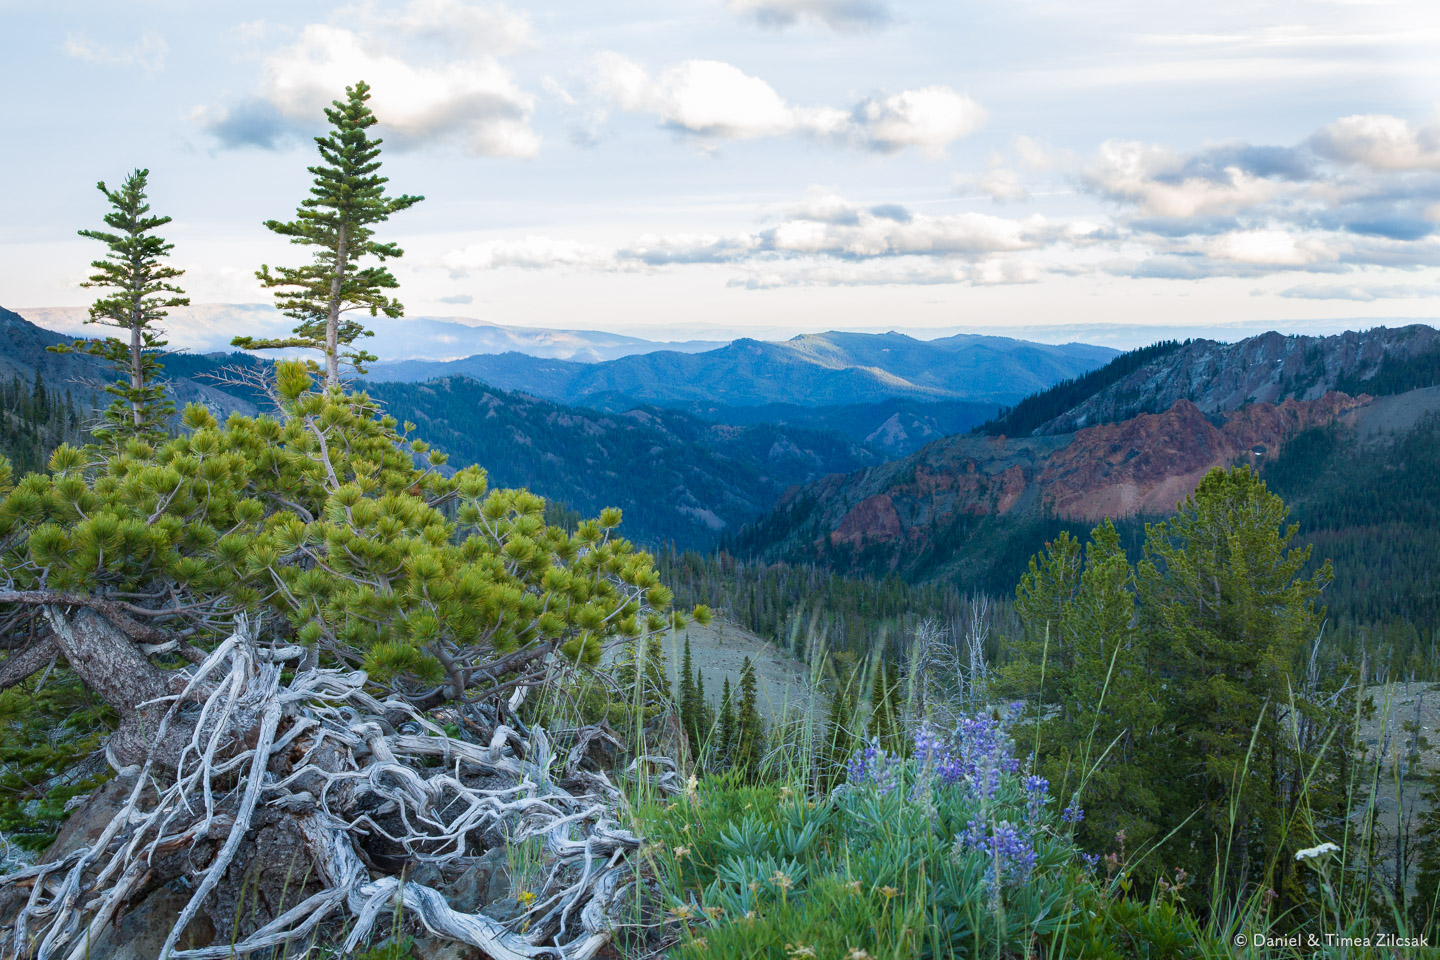 Evening view from Navaho Pass